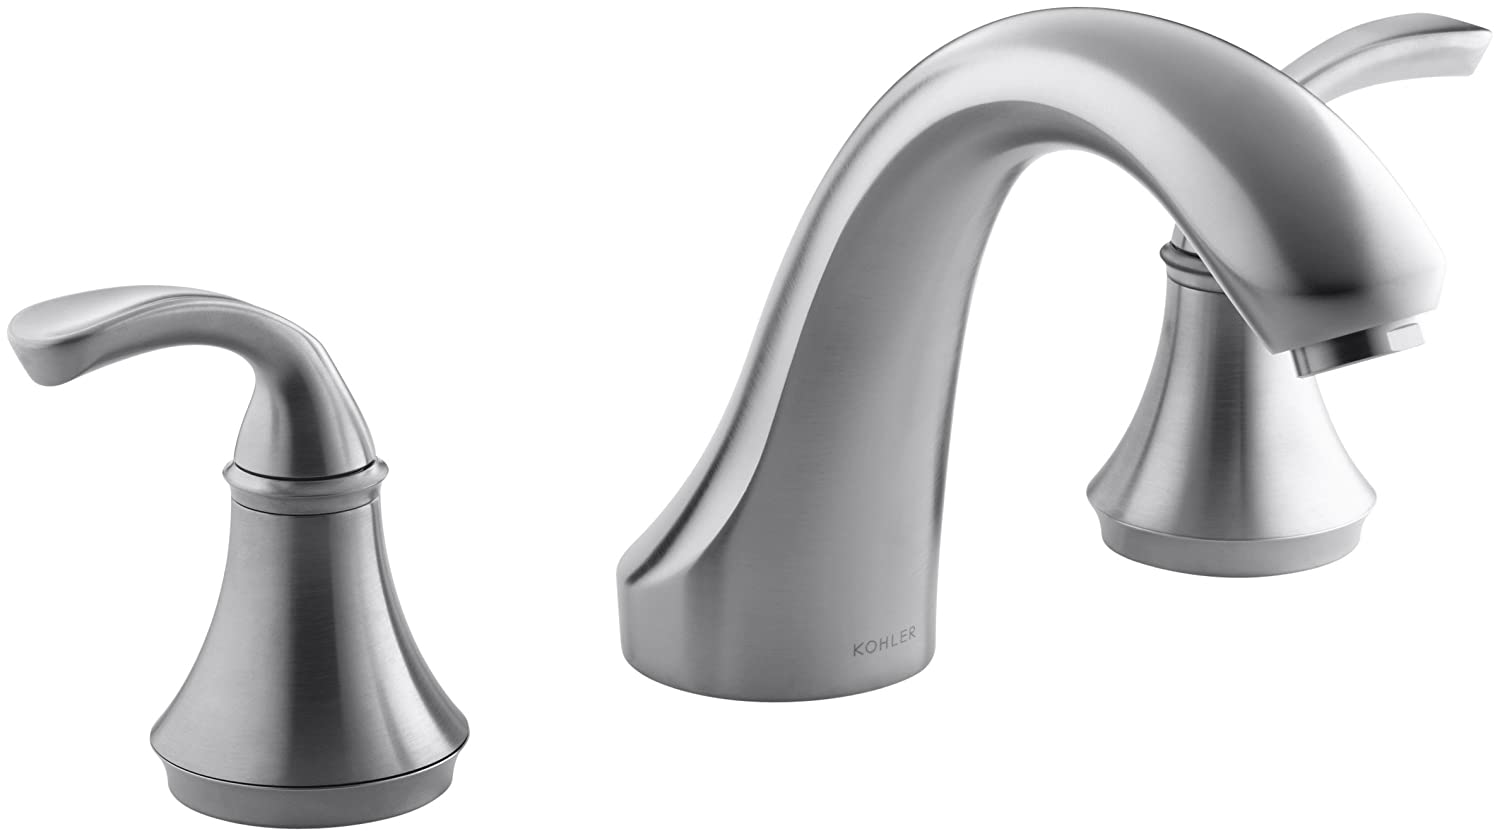 KOHLER K-T10278-4-BN Forte Bath- or Deck-Mount Rim Valve Trim ...